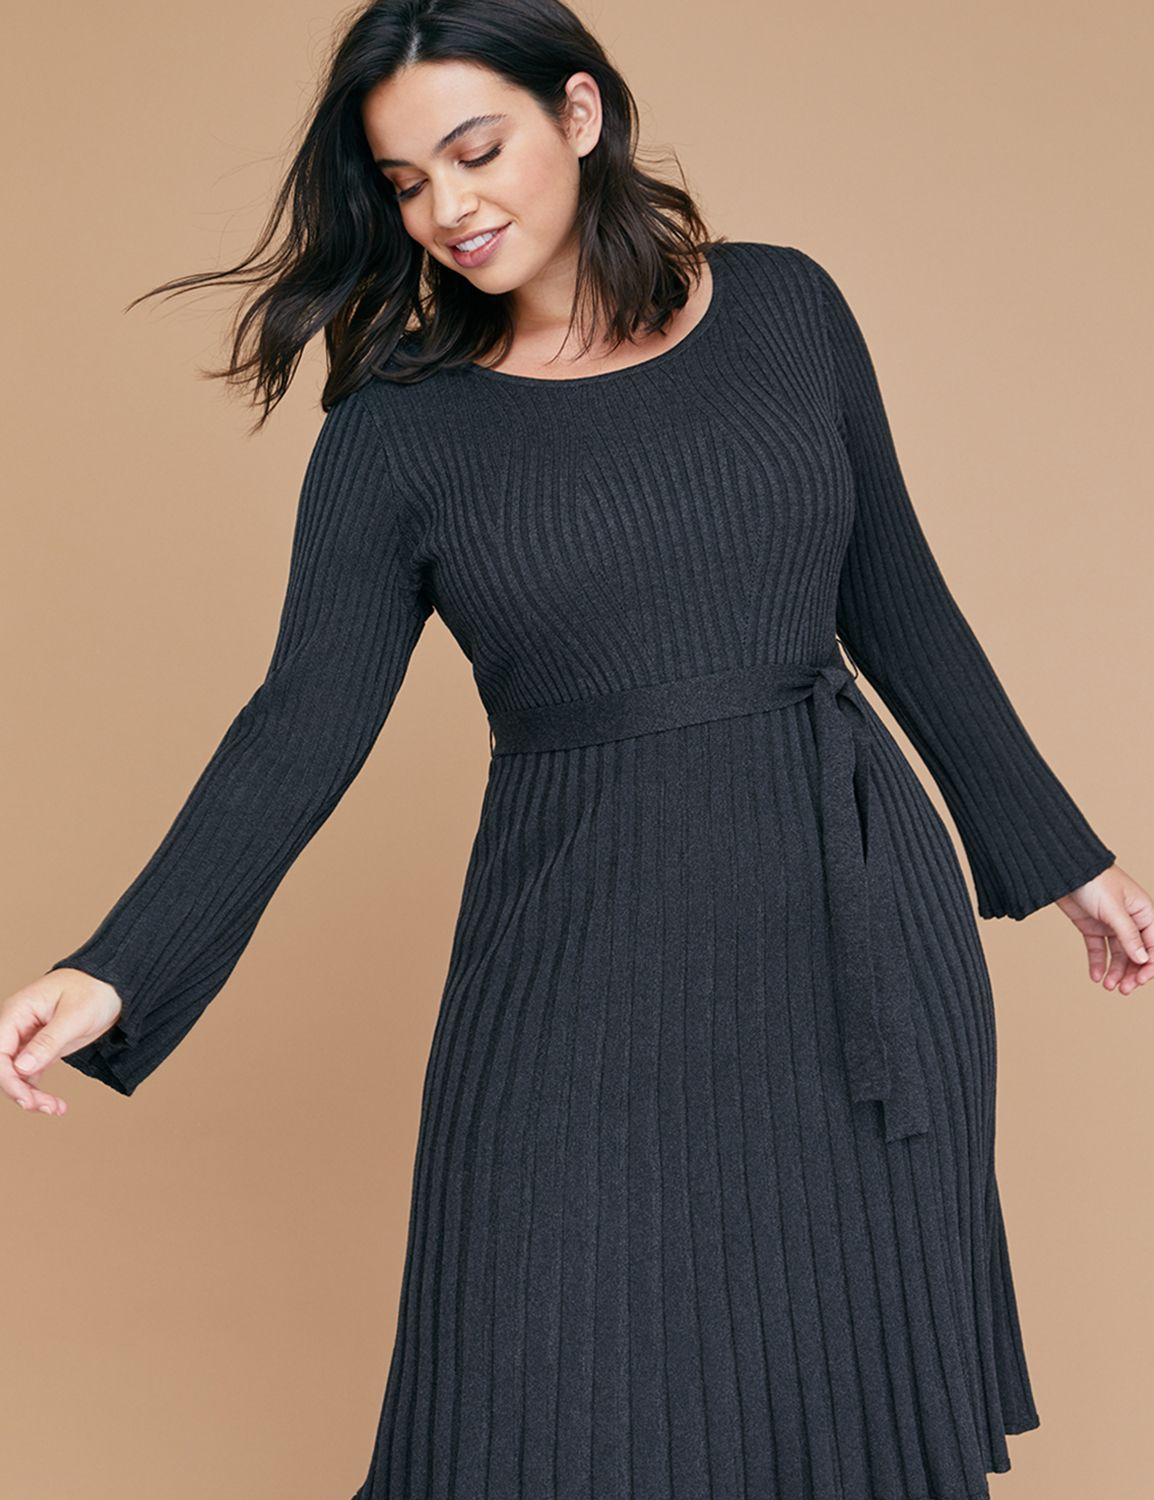 fc6ee89e0f1d Bell Sleeve Fit & Flare Ribbed Sweater Dress | Products | Dresses ...